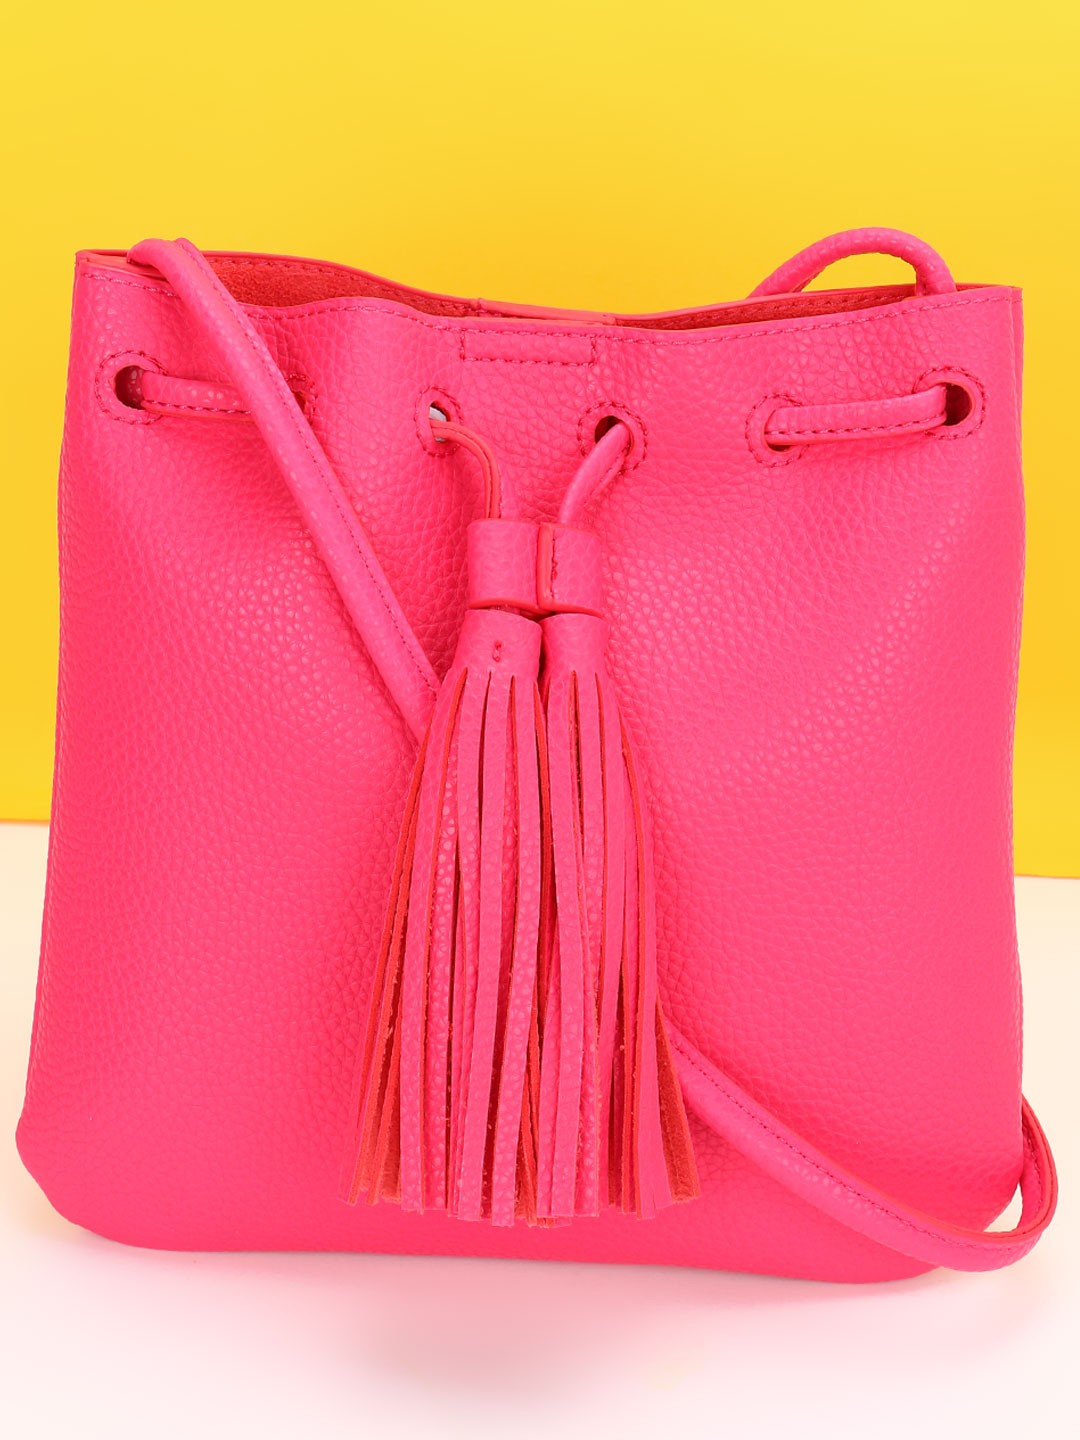 Red Cuckoo Pink Tassel Trim Sling Bag 1